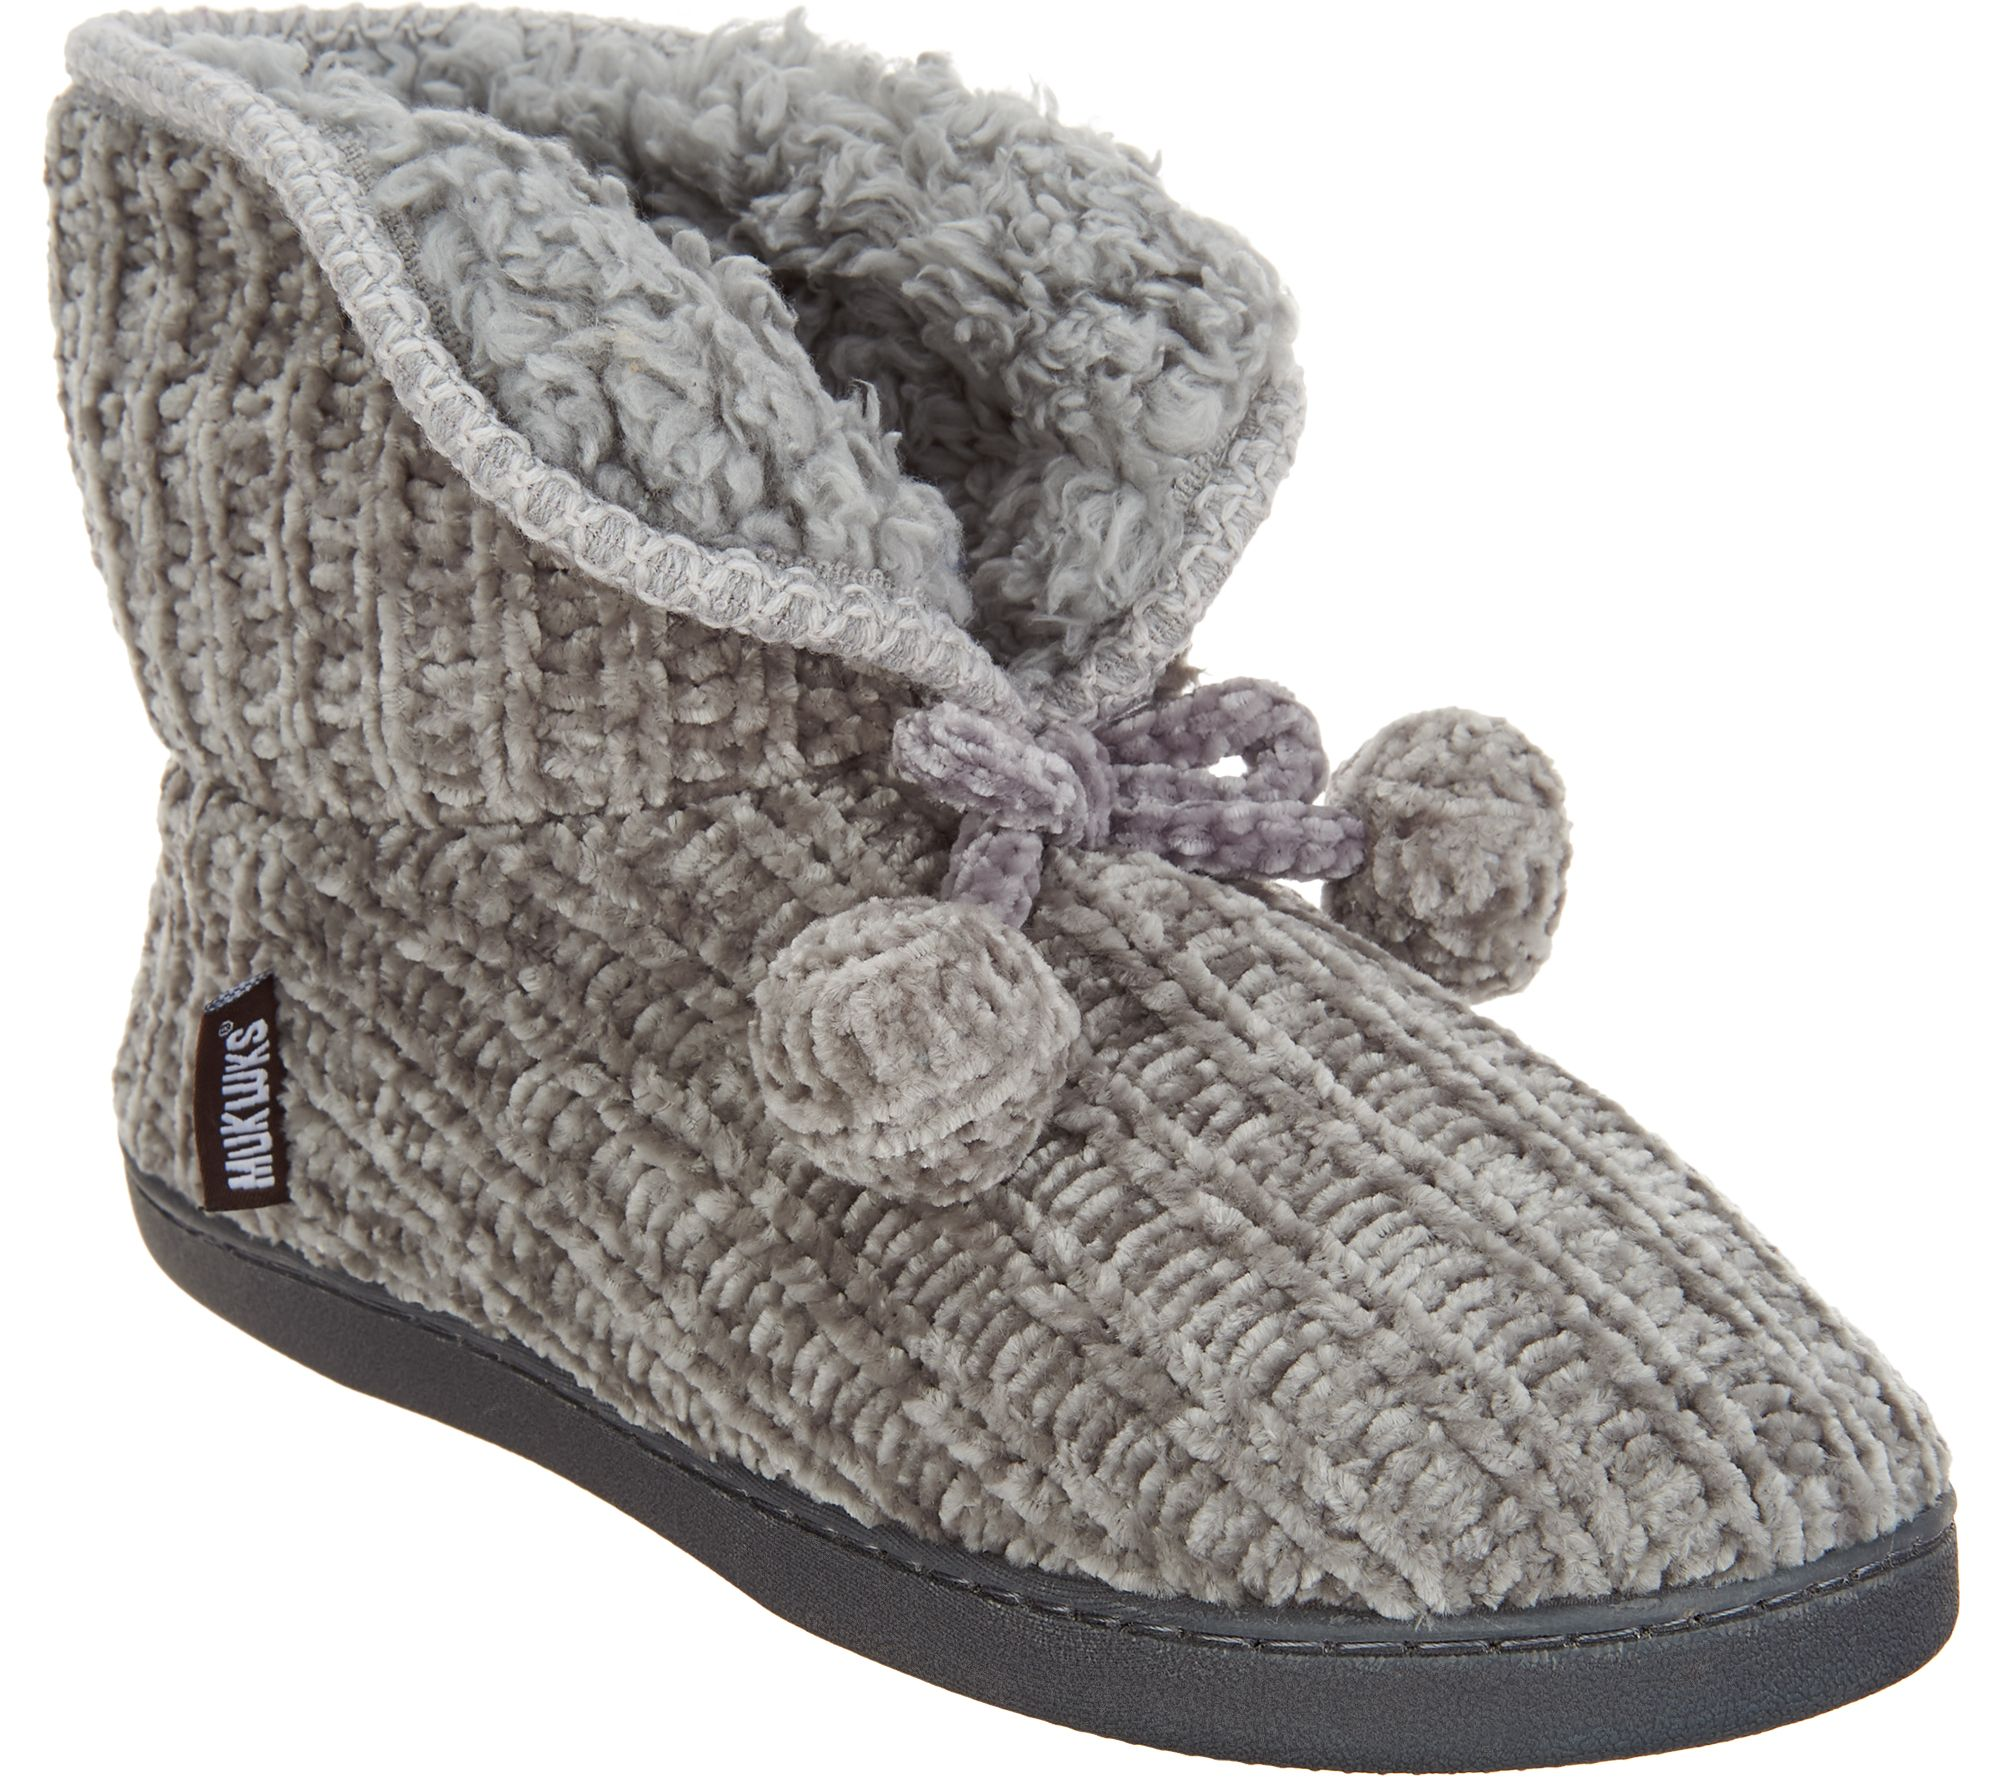 TARA SHOES Toddler Baby Rubber Sole Casual Shoes Warm Thicken Fluffy Lining Flooring Booties